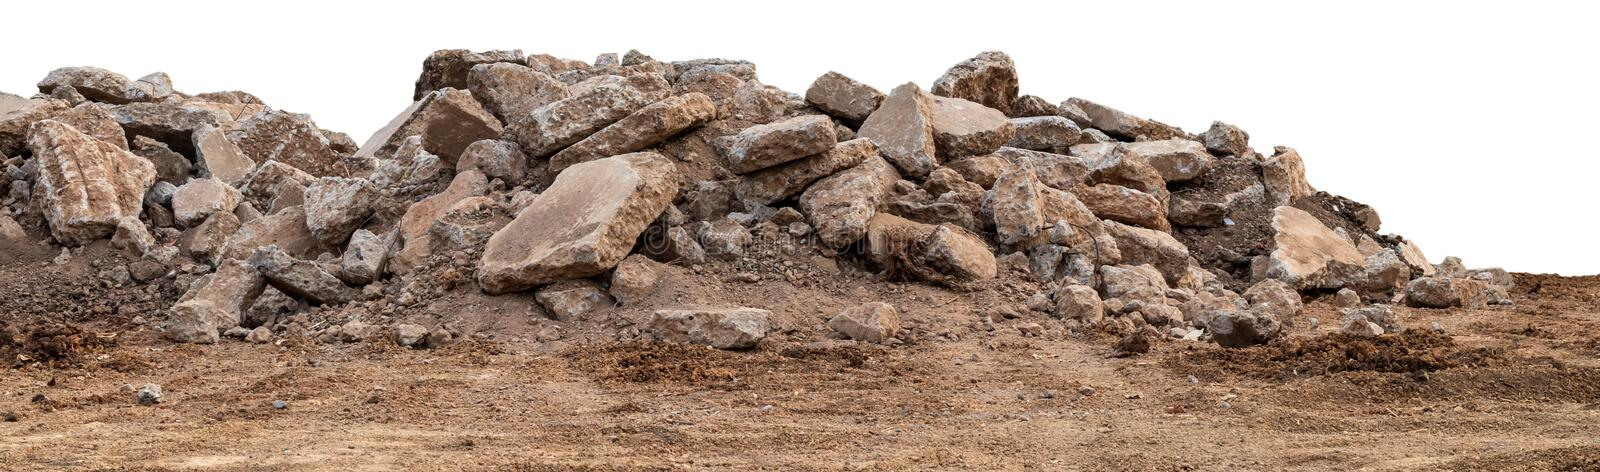 Isolated views of concrete debris piles on the ground royalty free stock images